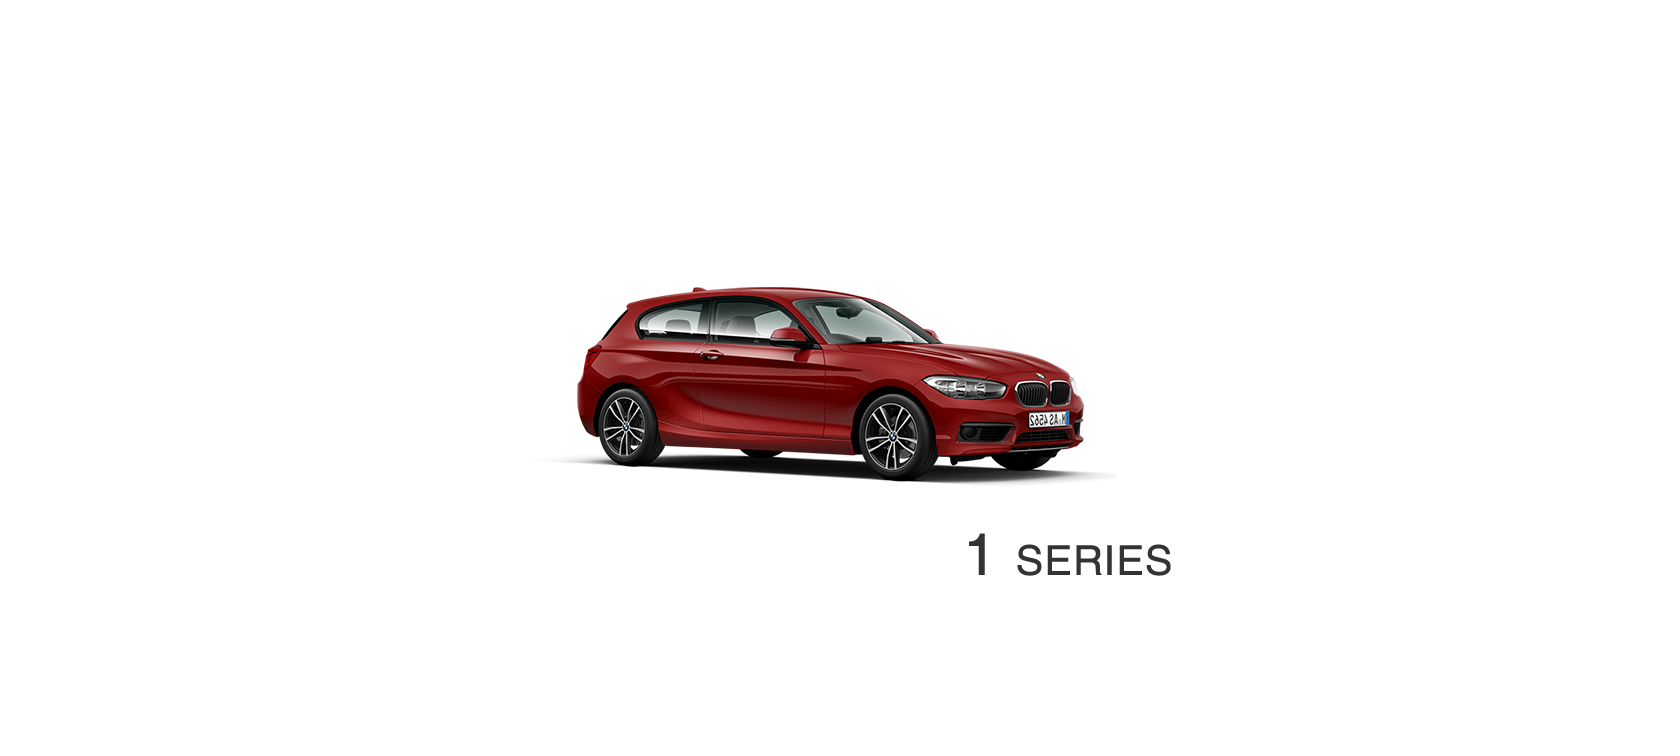 BMW 1 Series | Headlight lens plastic covers